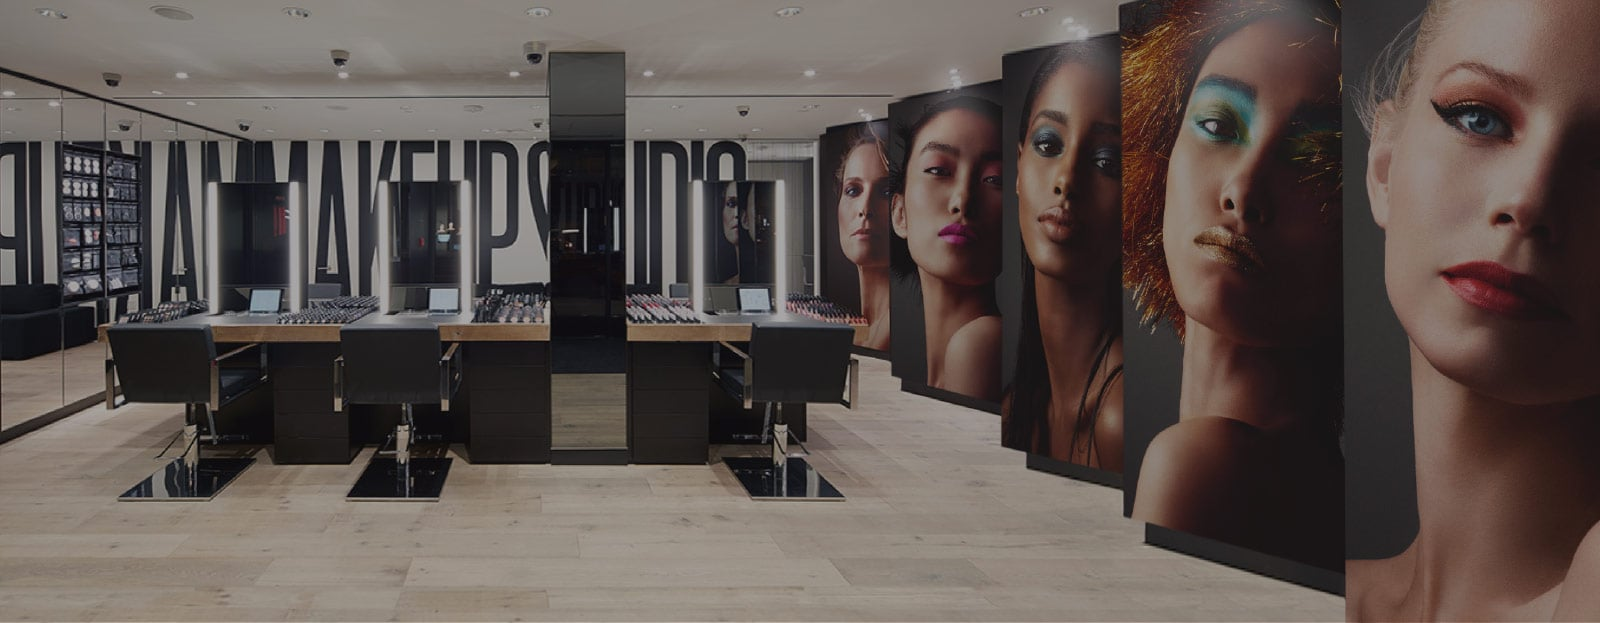 MAC Stores - Locations and Hours | MAC Cosmetics - Official Site